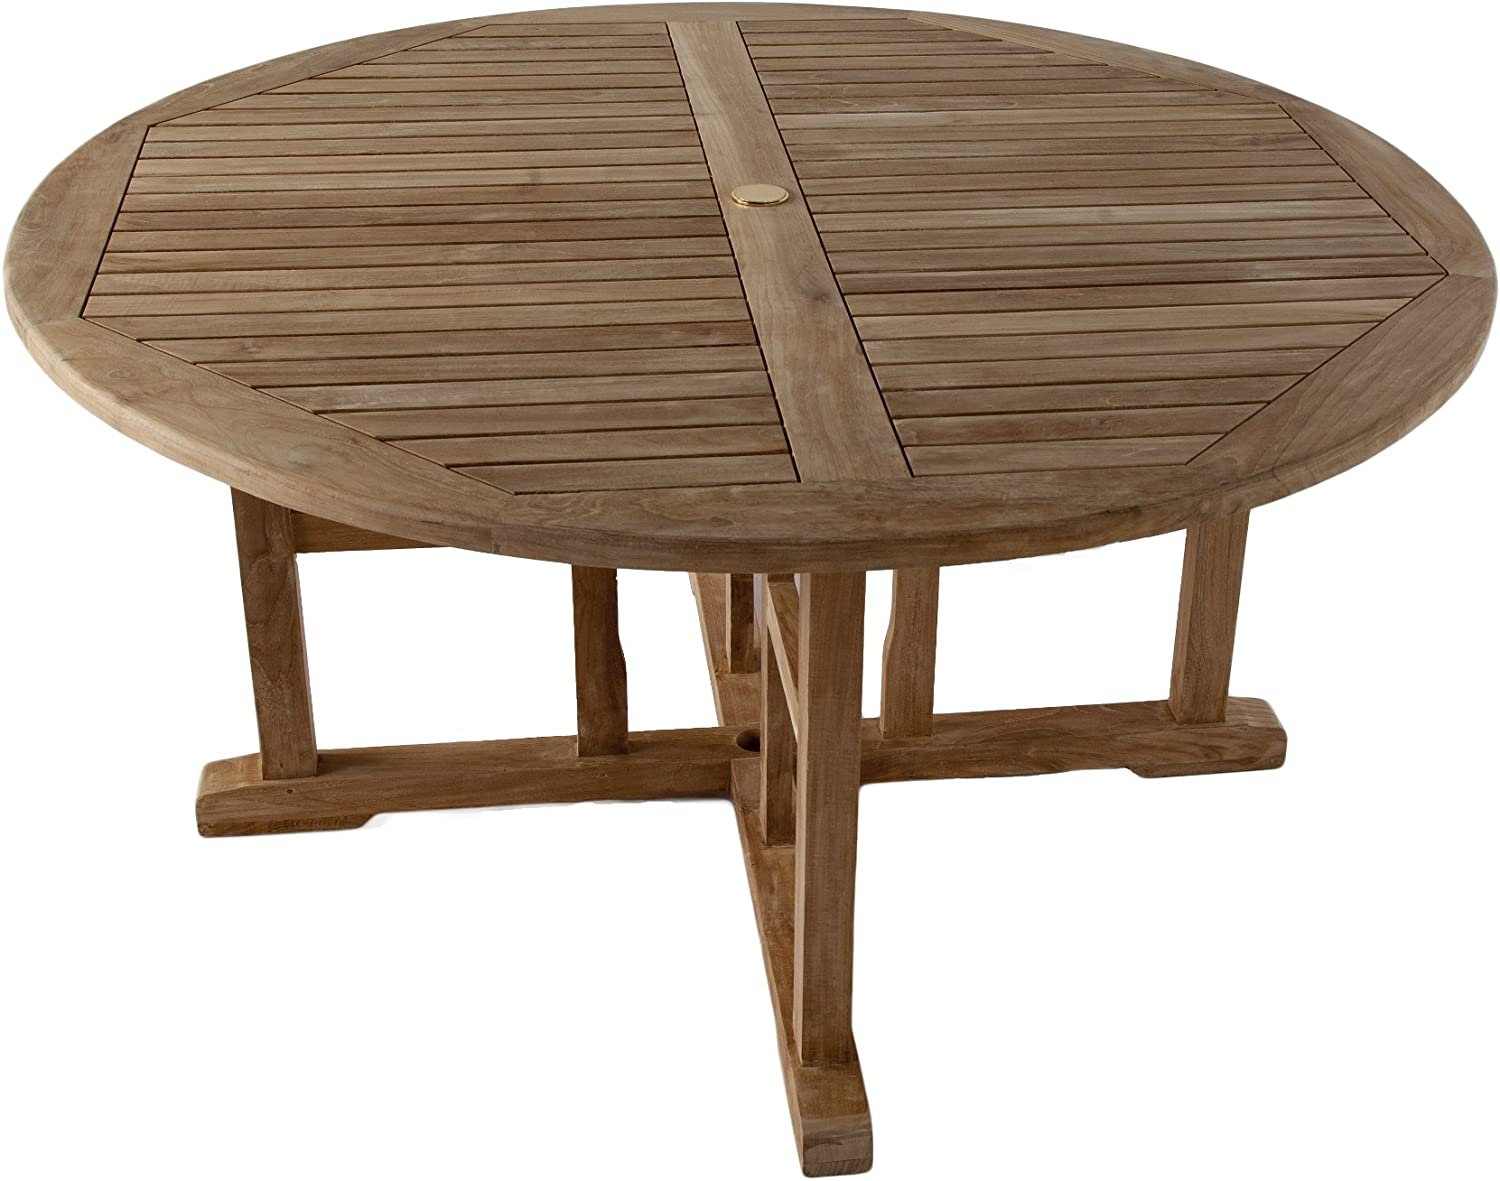 Madison Grade A Teak Wooden Round Dining Table - 8.8m Wood Garden Table